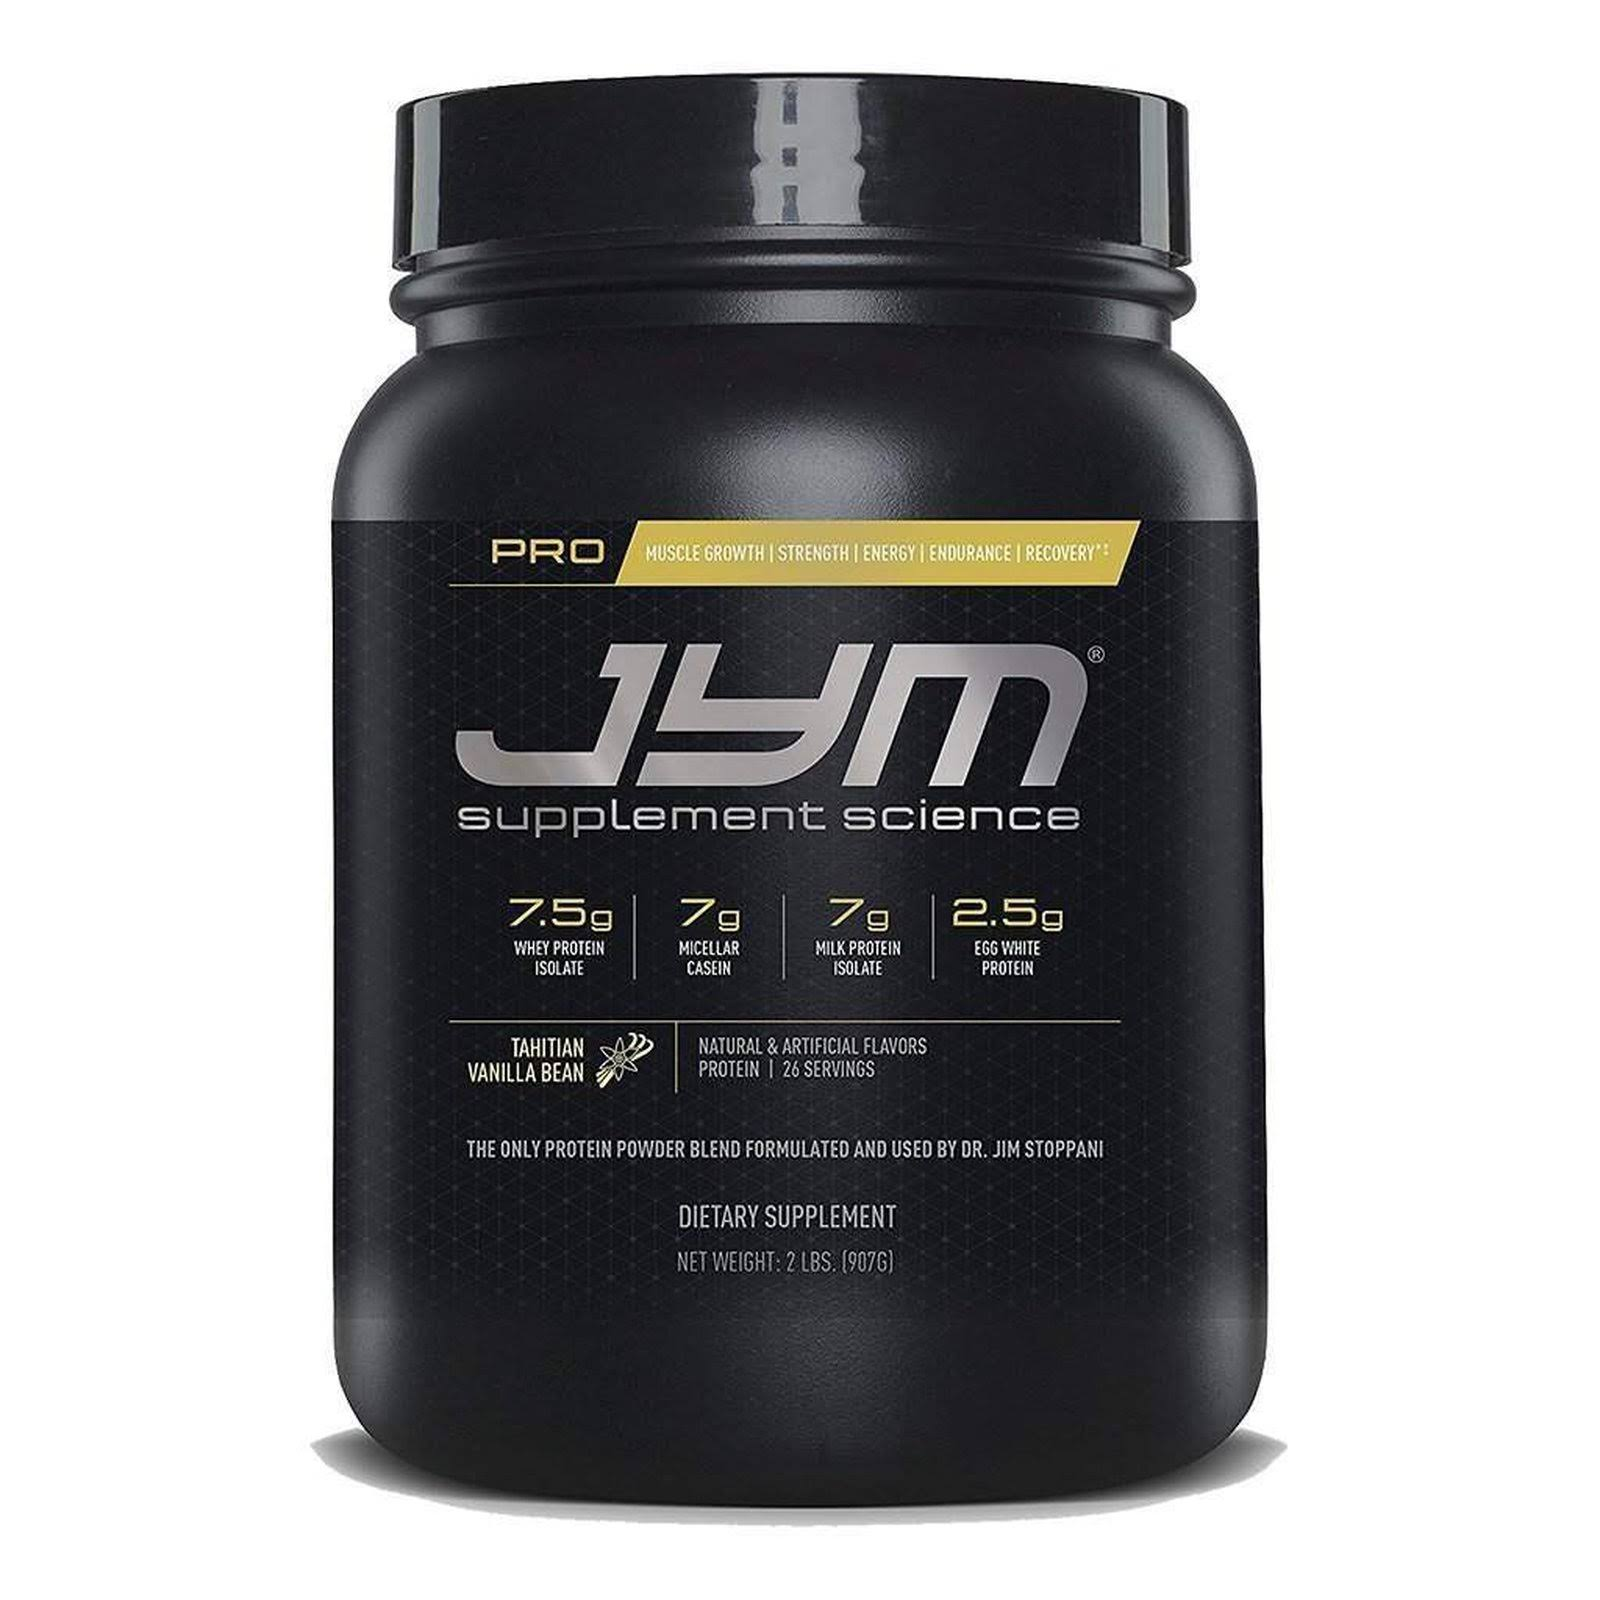 JYM Supplement Science Pro Optimal Blend Supplement - Tahitian Vanilla Bean, 2lbs